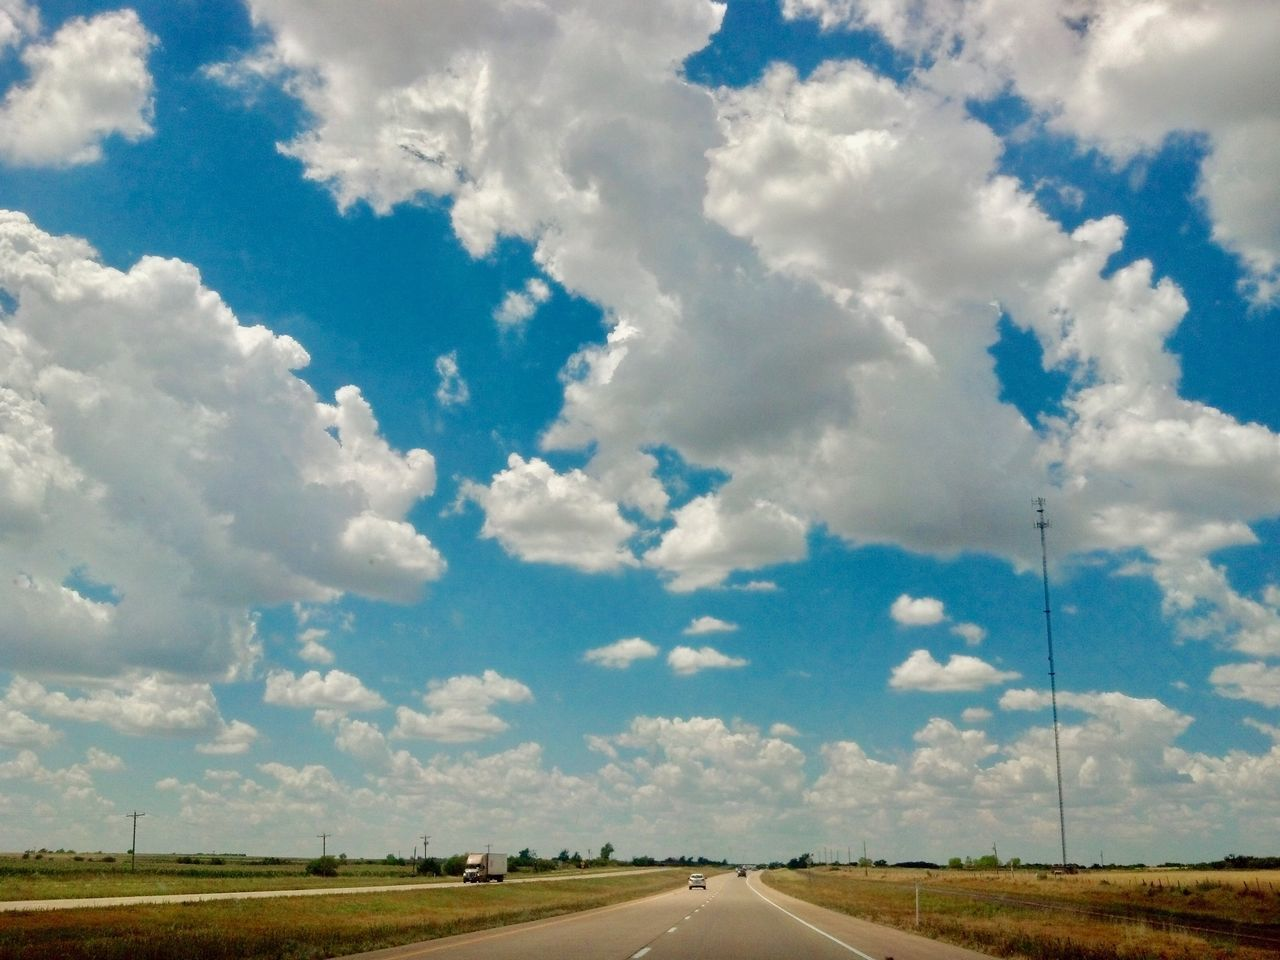 Road trip Road Trip Road Trippin' Vacation Holiday Blue Skies Clouds And Sky Vehicle Driving Drivebyphotography Long Road Long Road Ahead Long Road To Go, Through The Windscreen Daytripping Day Trip Lifestyles